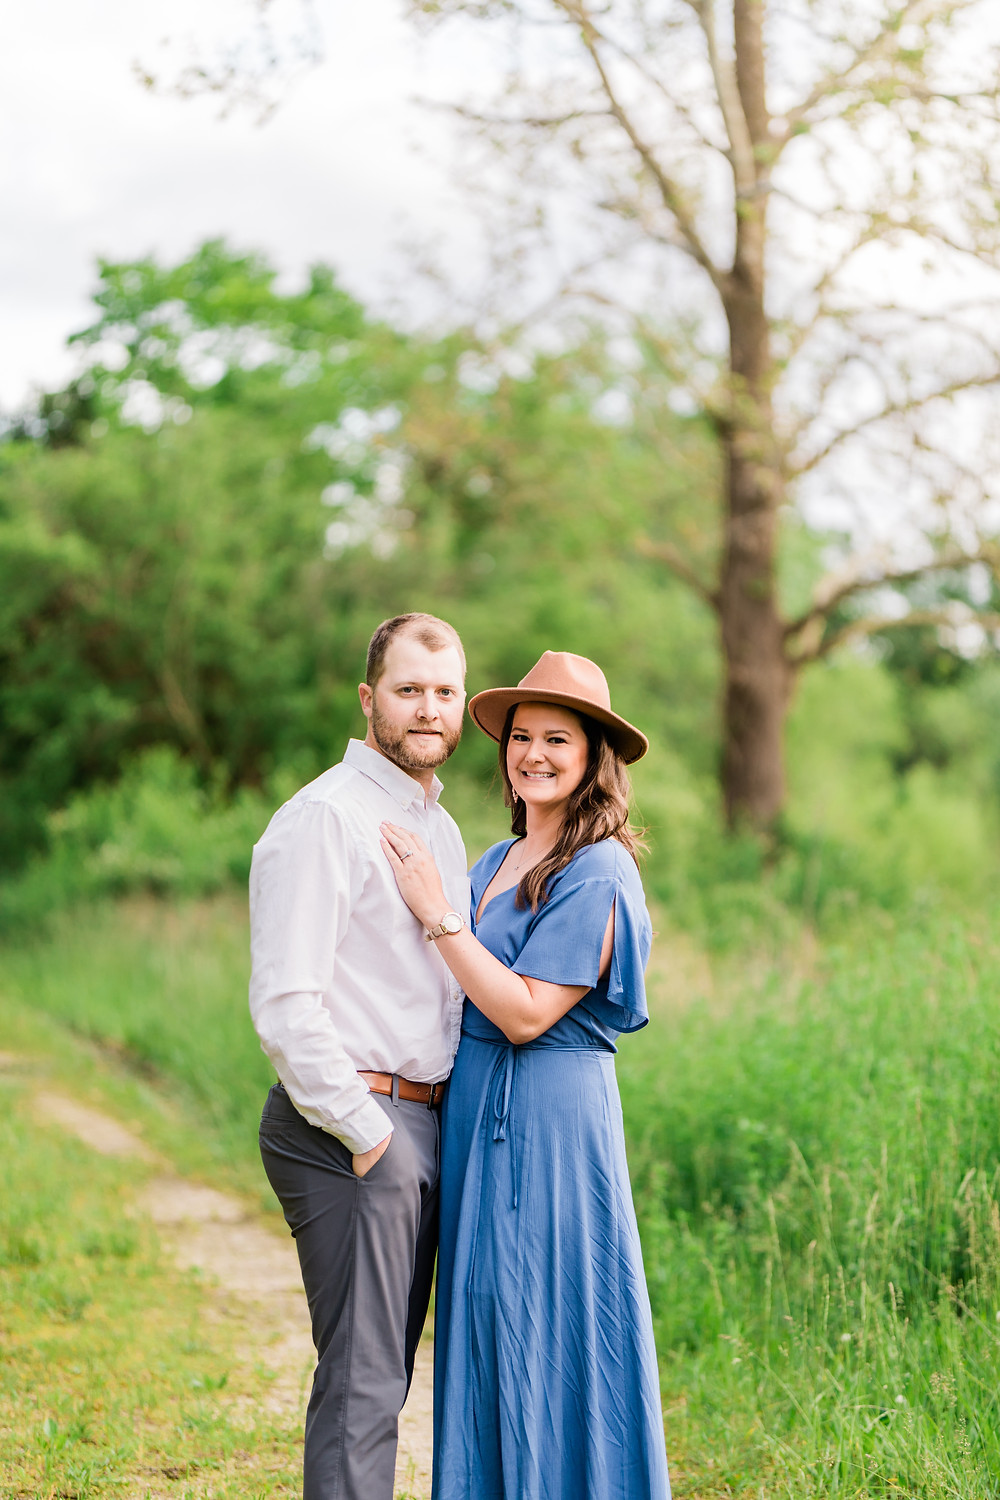 Busch Wildlife Engagement Session  Engagement Photographer St. Charles Missouri  Summer engagement session  Black Tie Weddings & Events